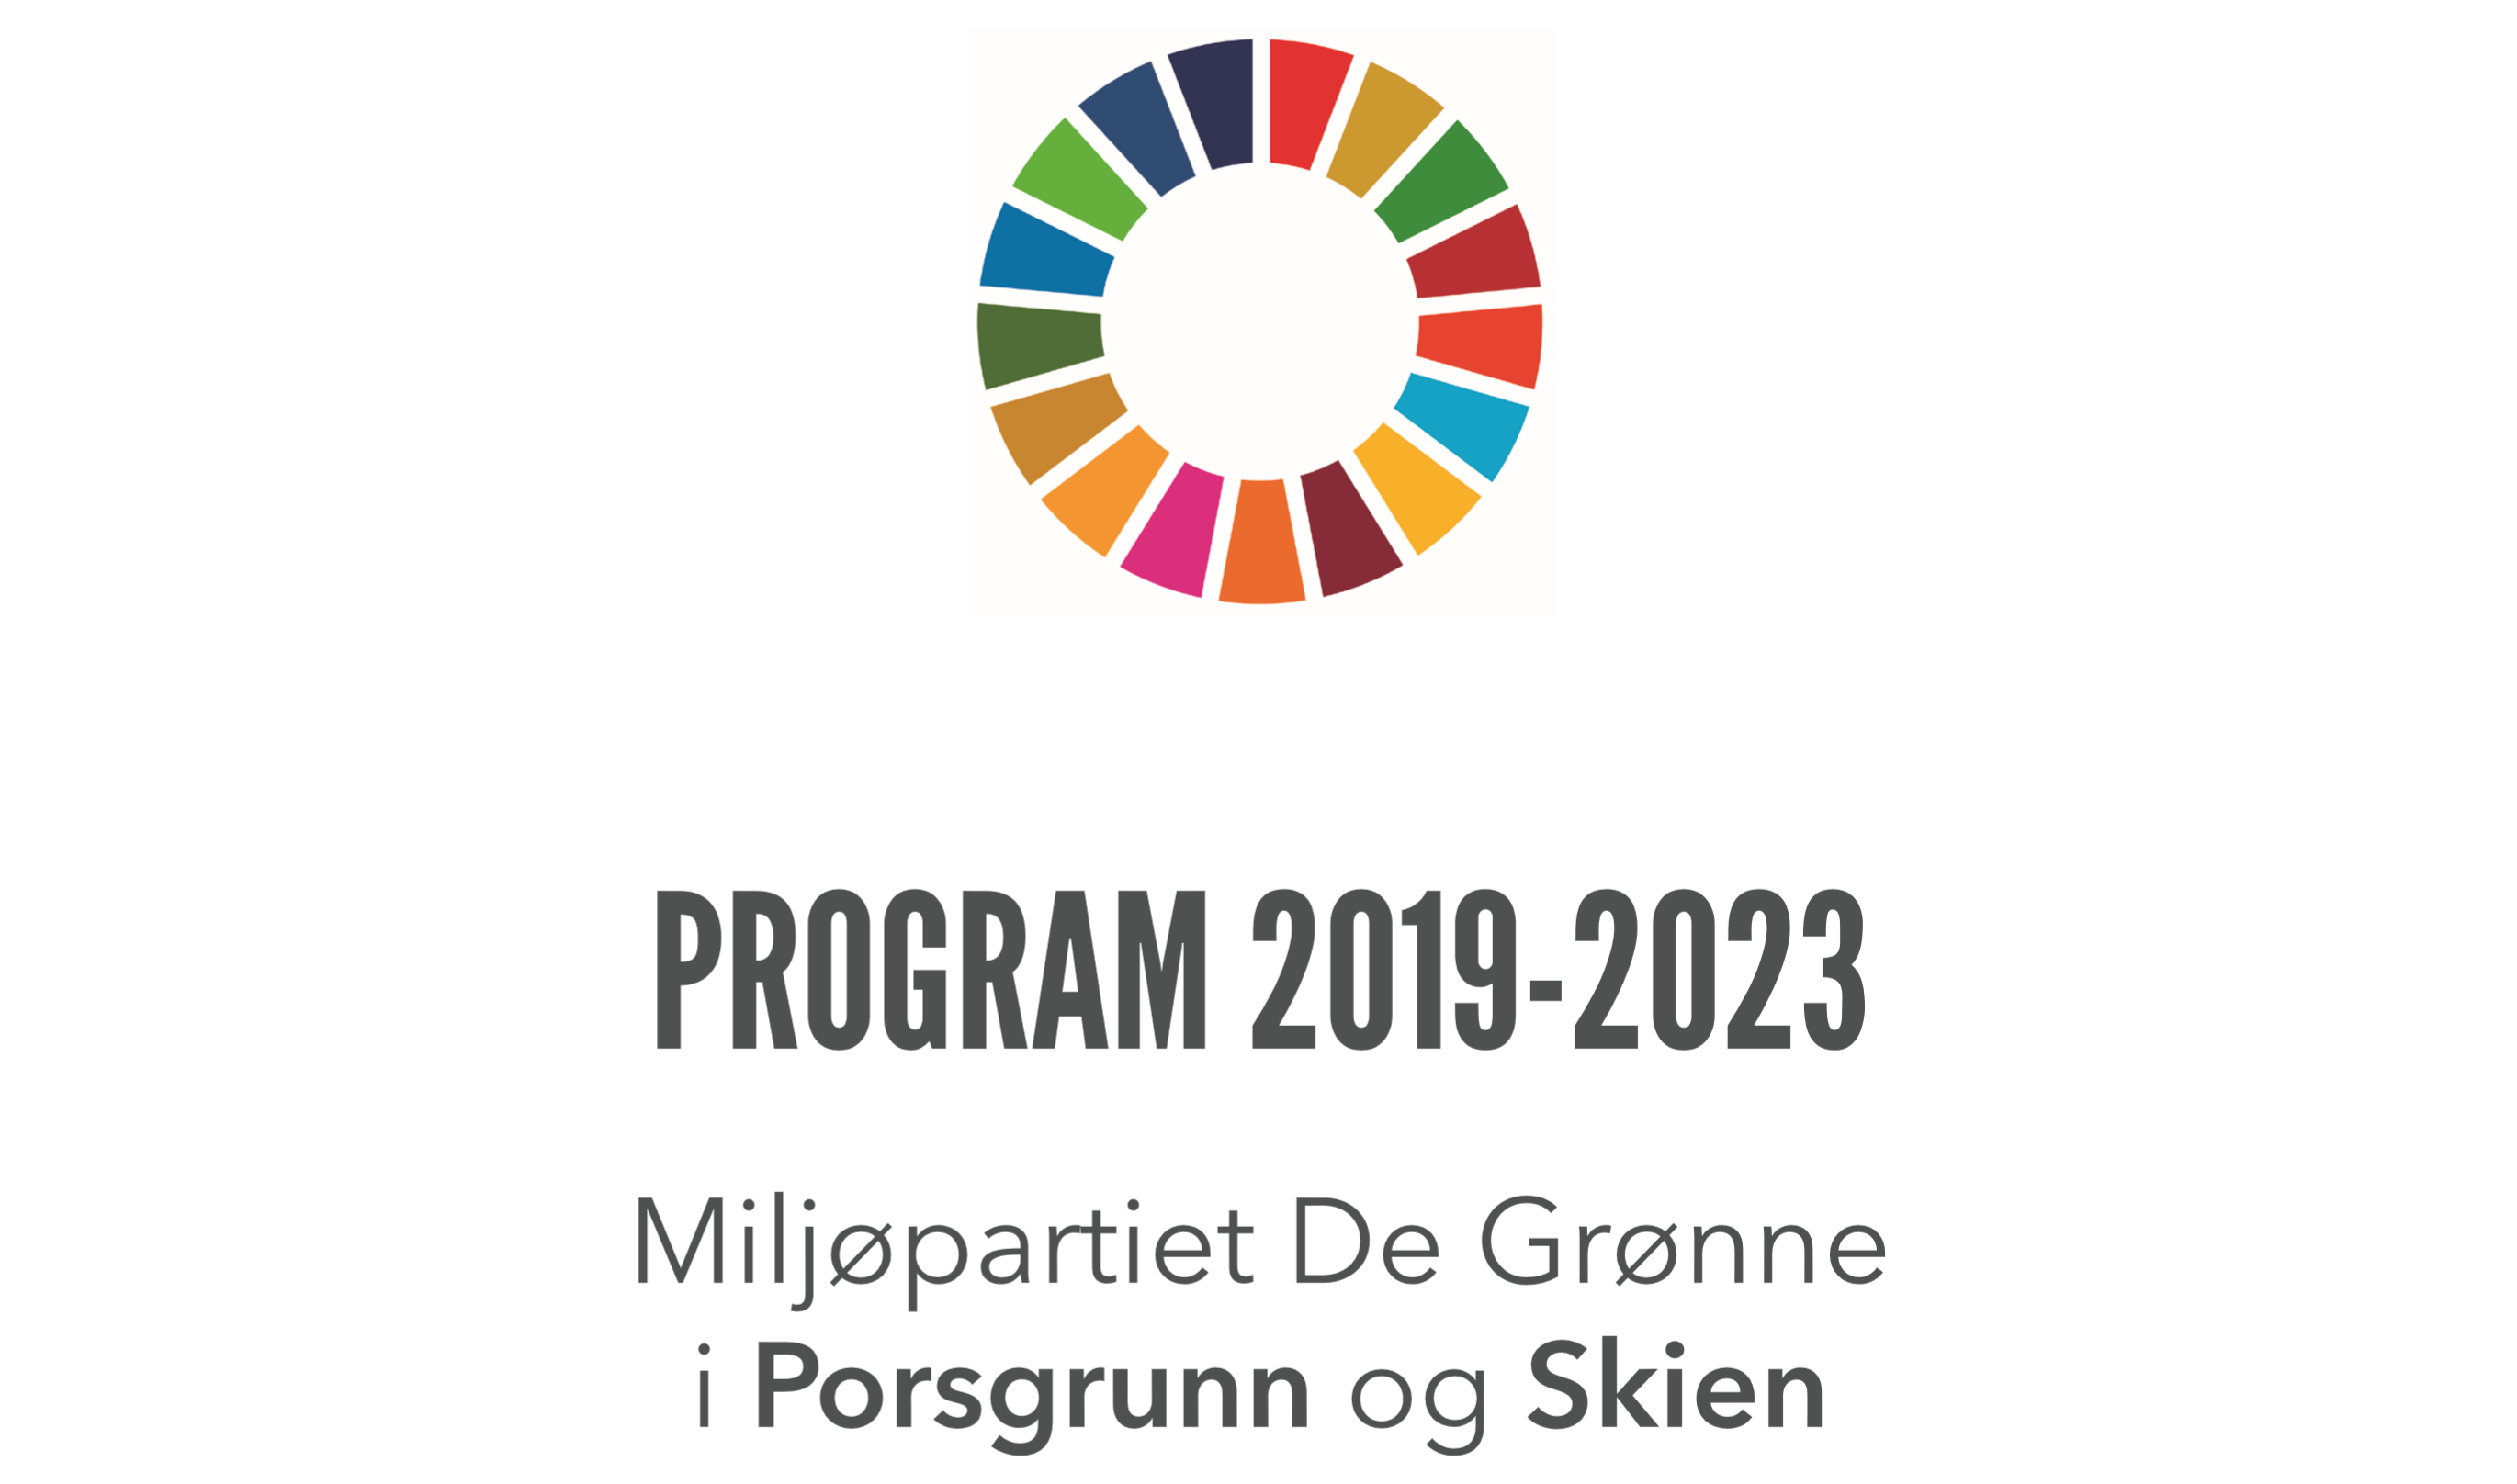 Program MDG Skien og Porsgrunn 2019-2023